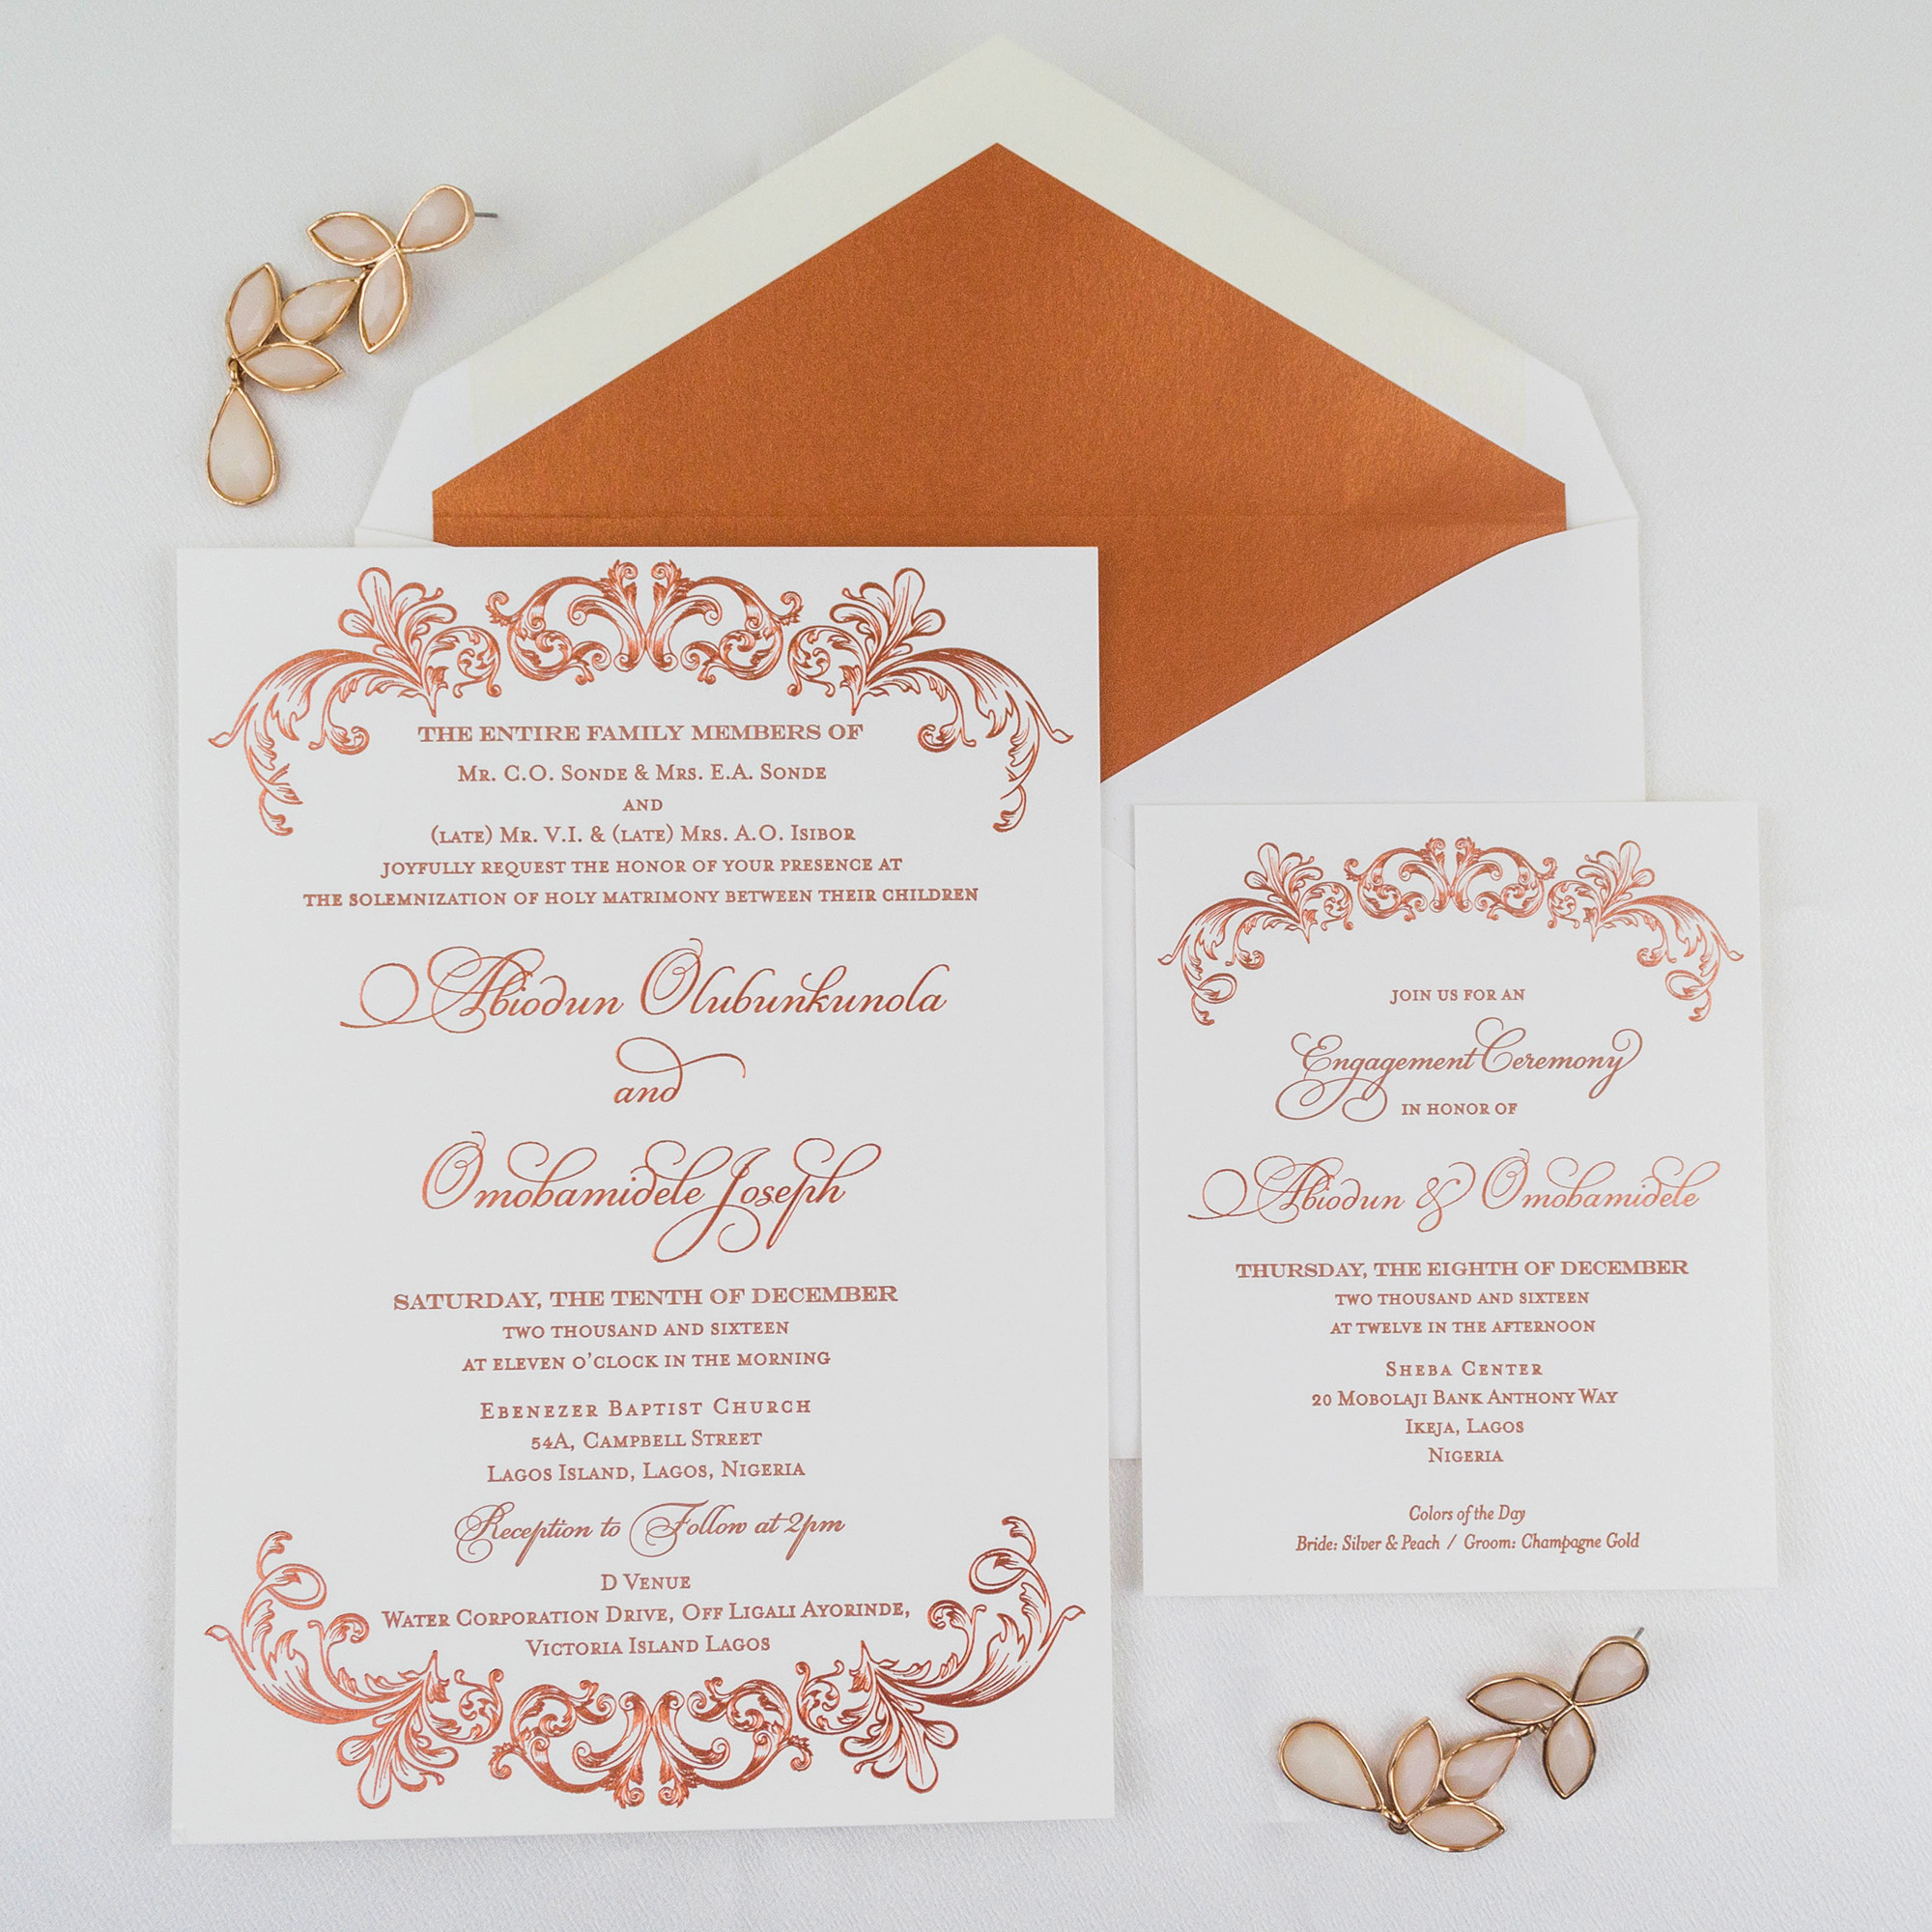 Opulant_Wedding_Invitations_1